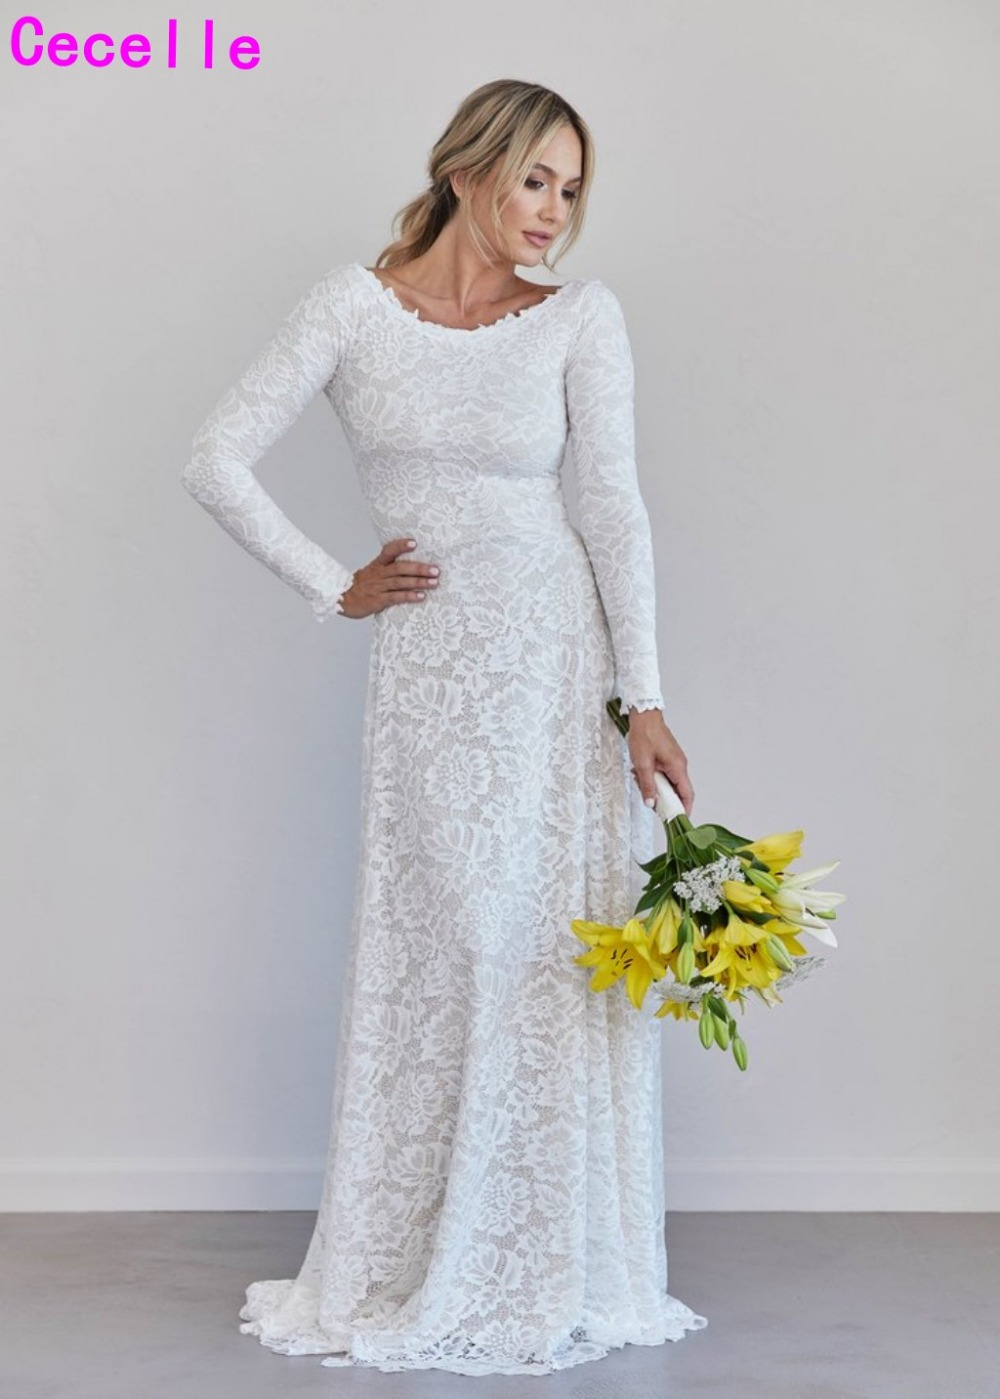 Modest Wedding Dress.Us 162 85 29 Off Robe De Marie 2019 A Line Lace Boho Modest Wedding Dress With Long Sleeves Simple Informal Vintage Bohemian Lace Bridal Gowns In